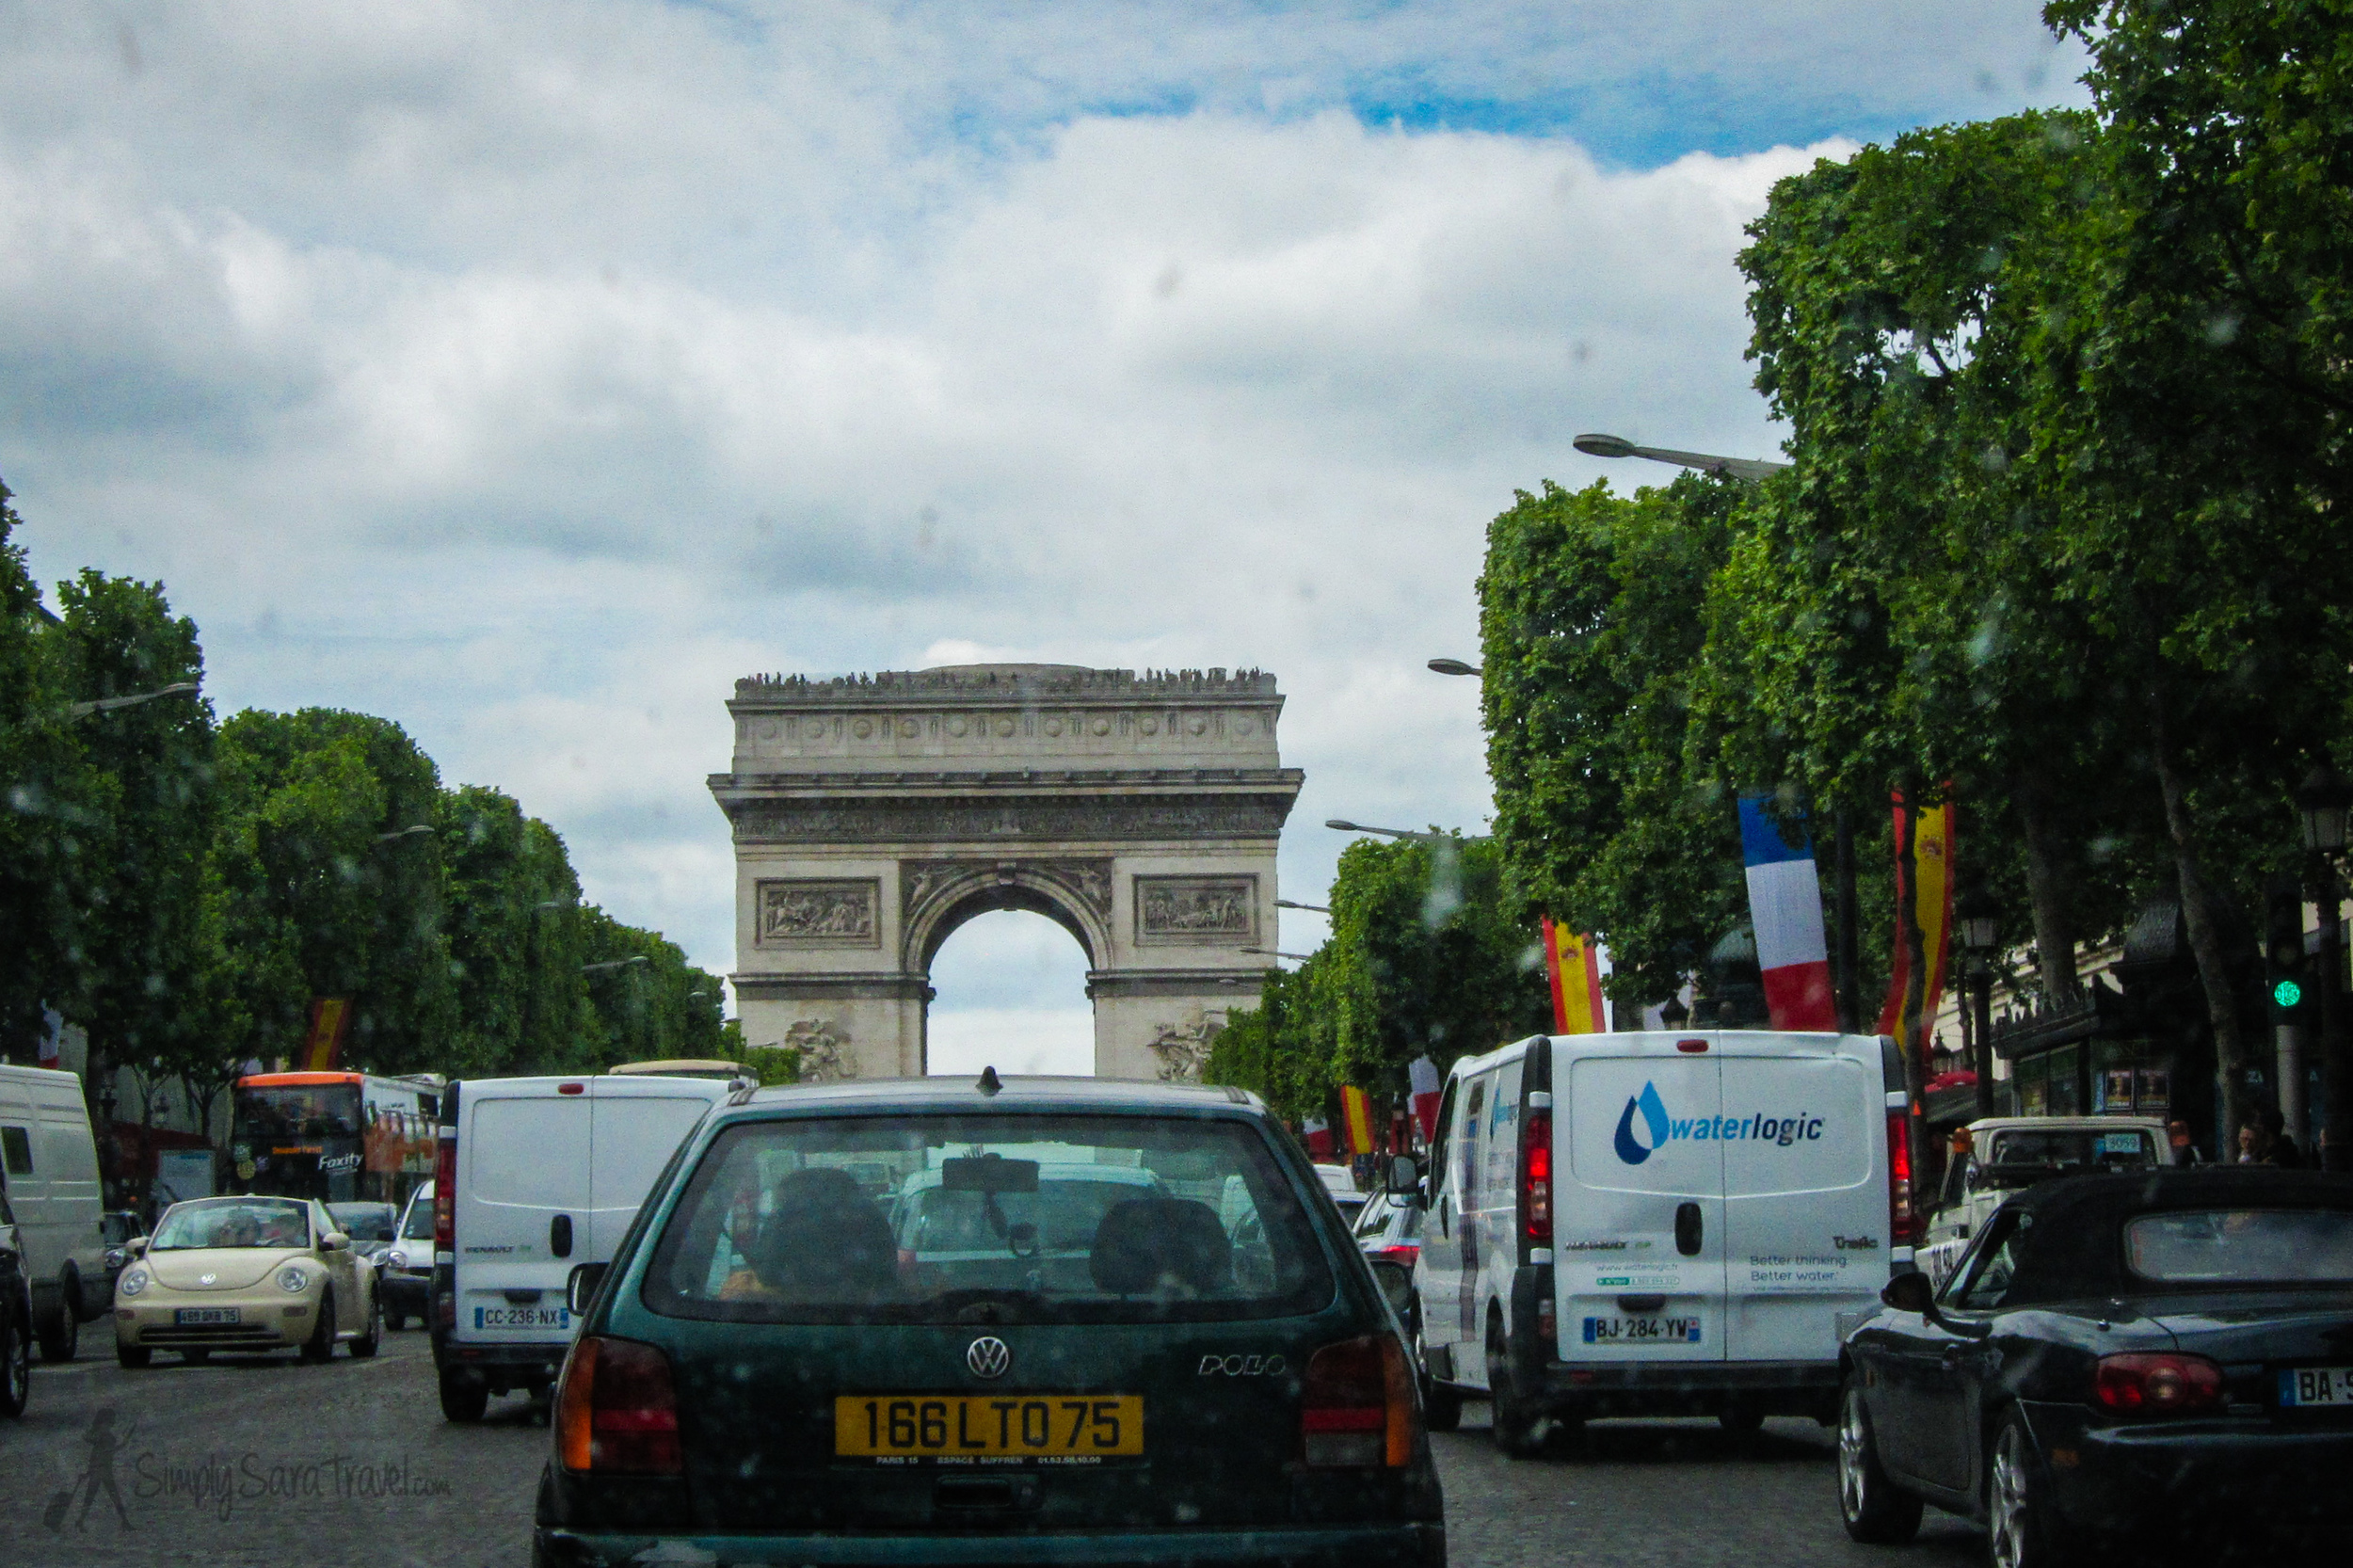 The only thing that stood in between us and returning our rental car was the Arc de Triomphe...and a very dirty windshield.